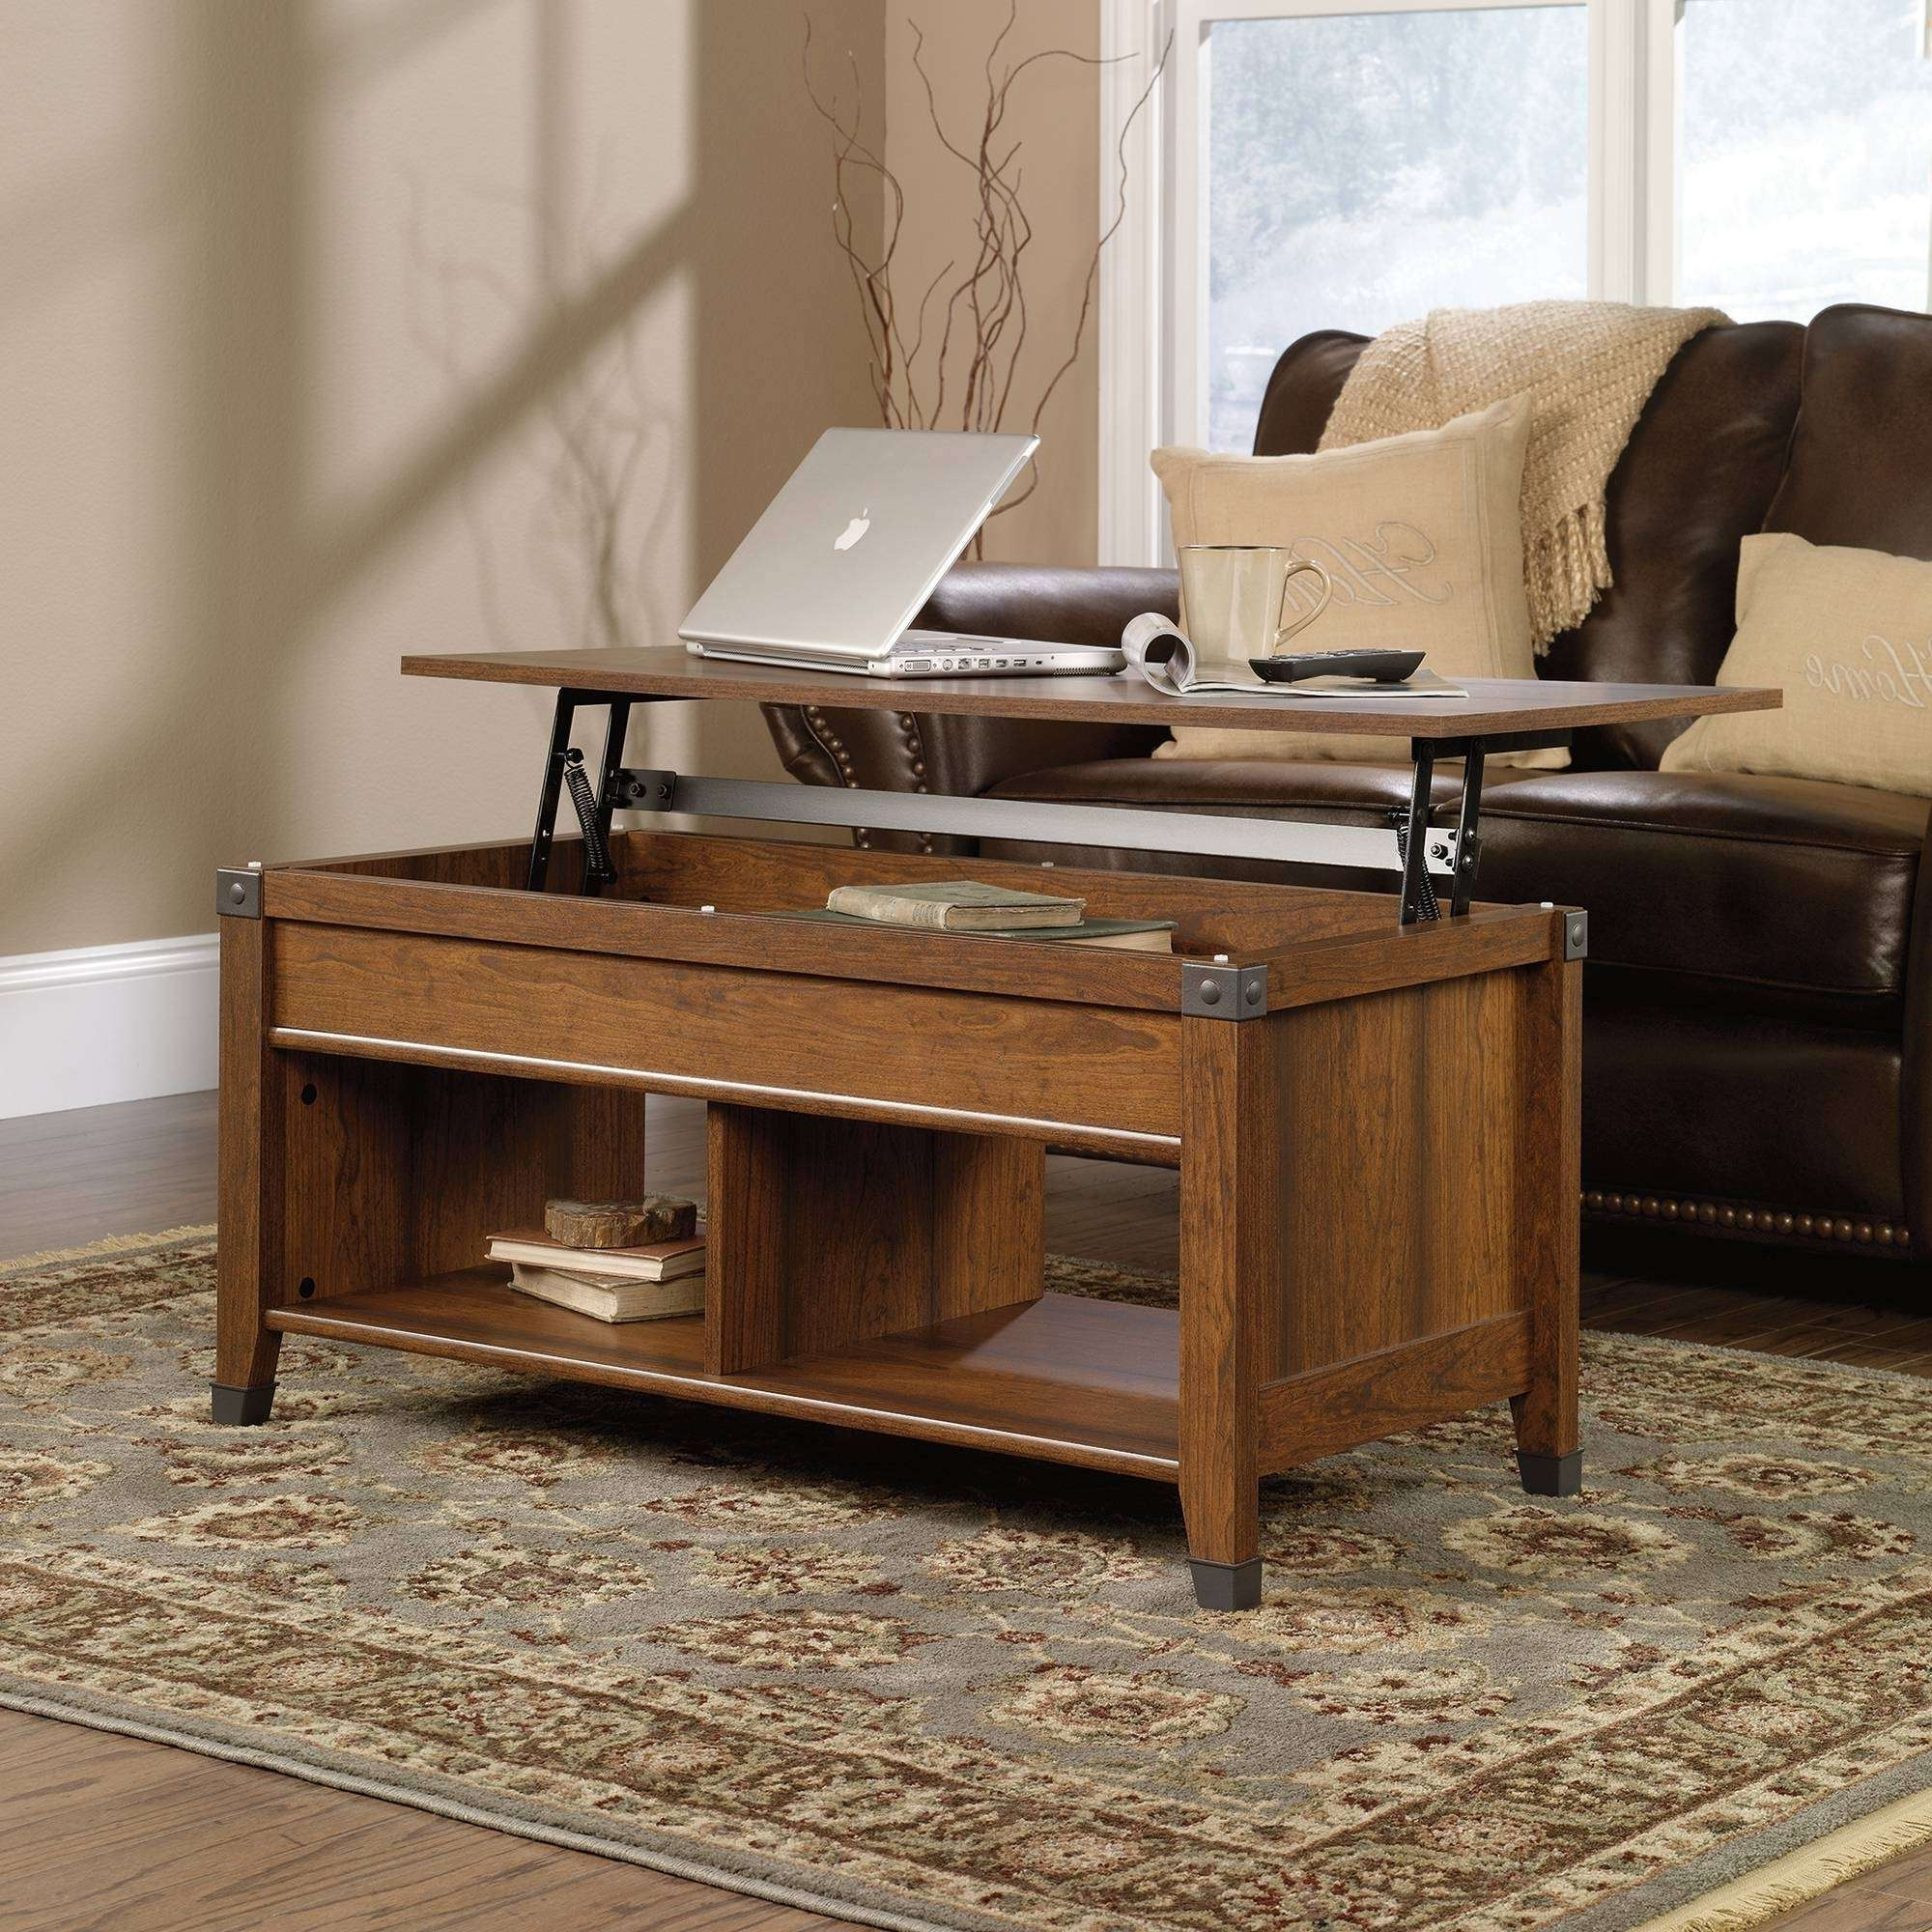 Collection Waverly Lift Top Coffee Table – Mediasupload In Most Recently Released Waverly Lift Top Coffee Tables (View 6 of 20)